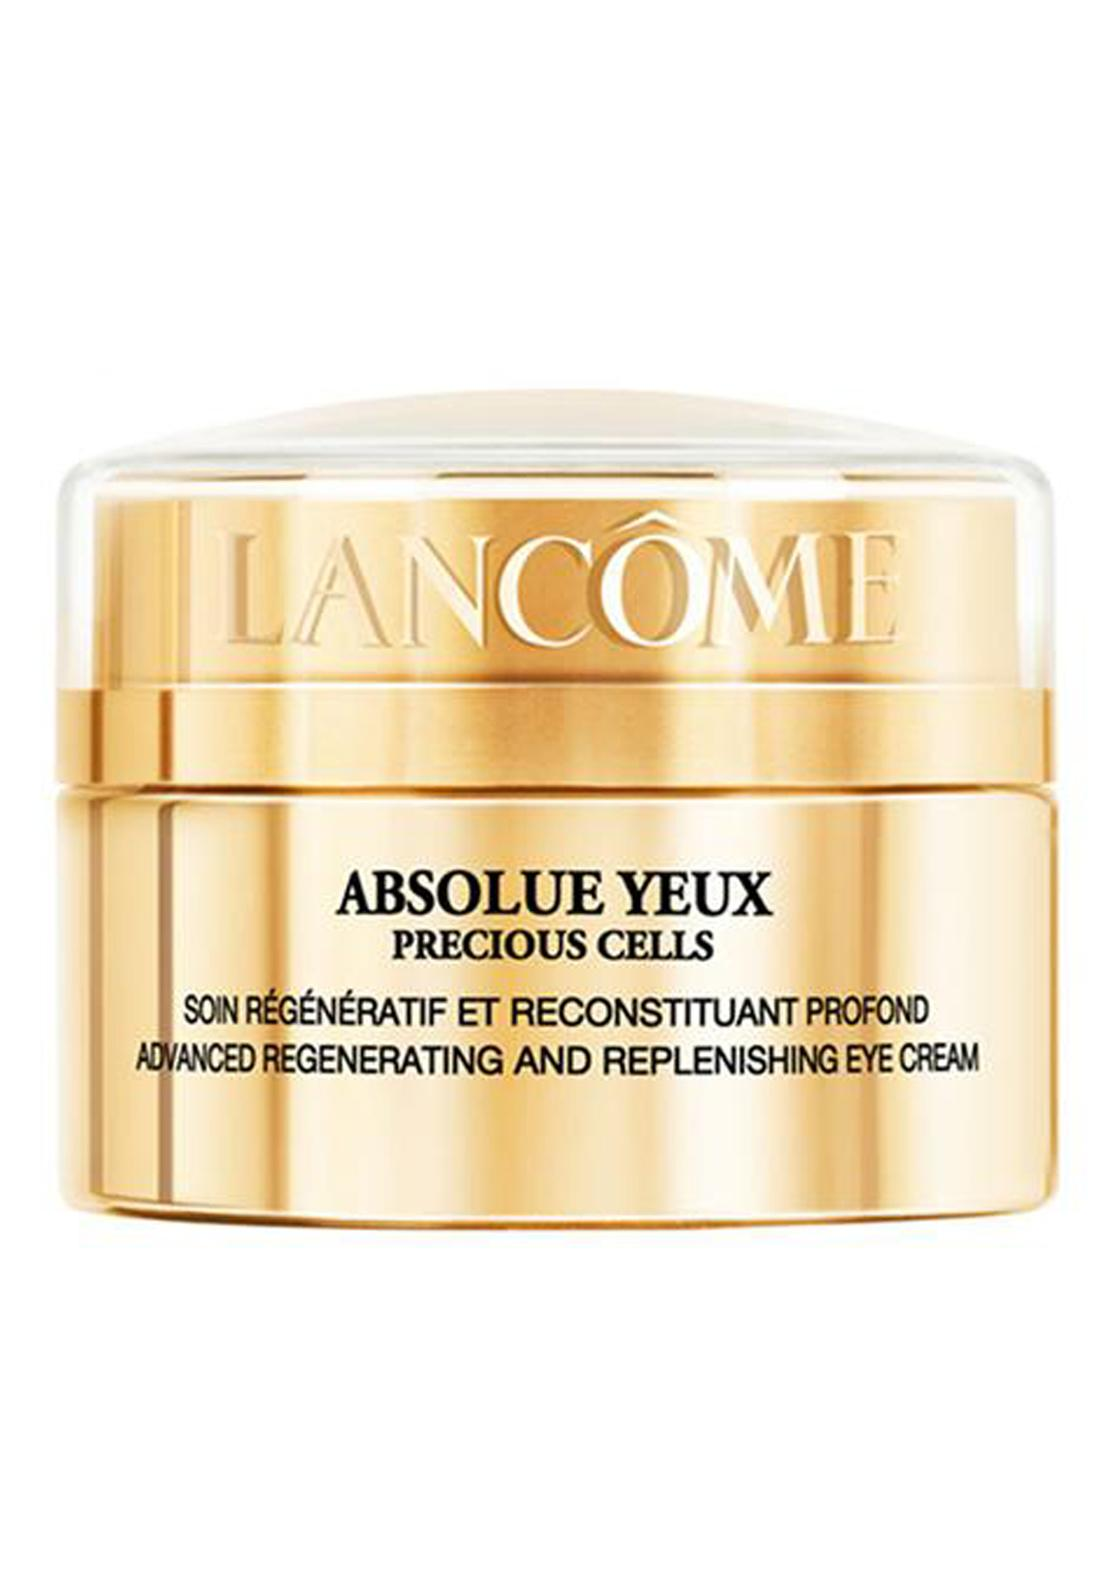 Lancôme Absolue Yeux Precious Cells Eye Cream 15ml